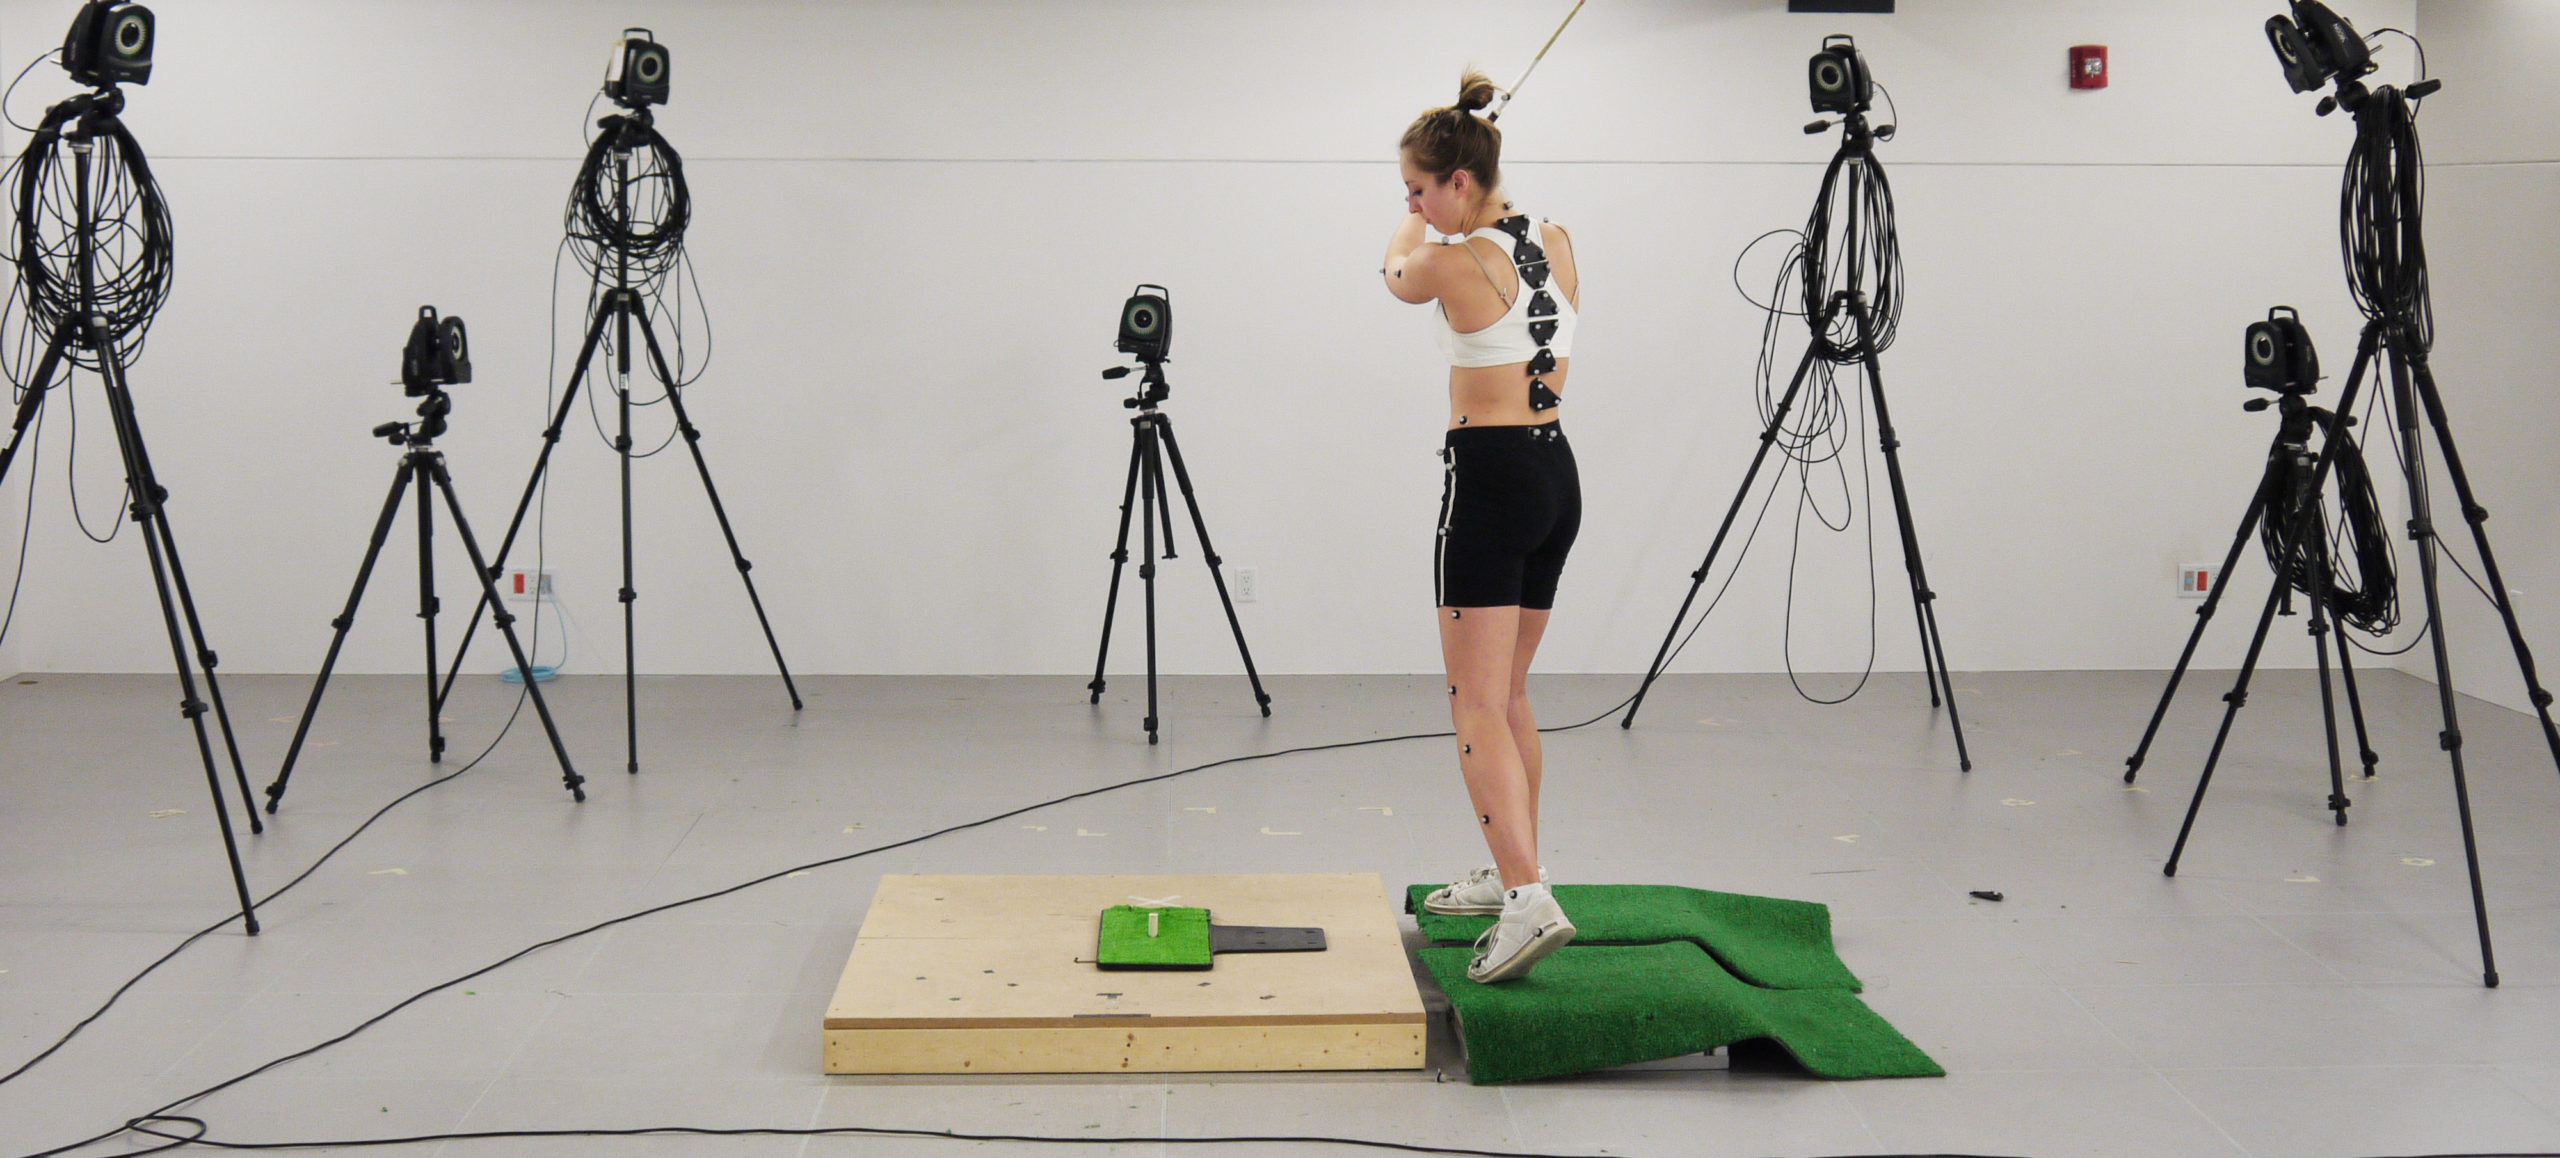 Kinesiology student swinging a golf club in a motion study